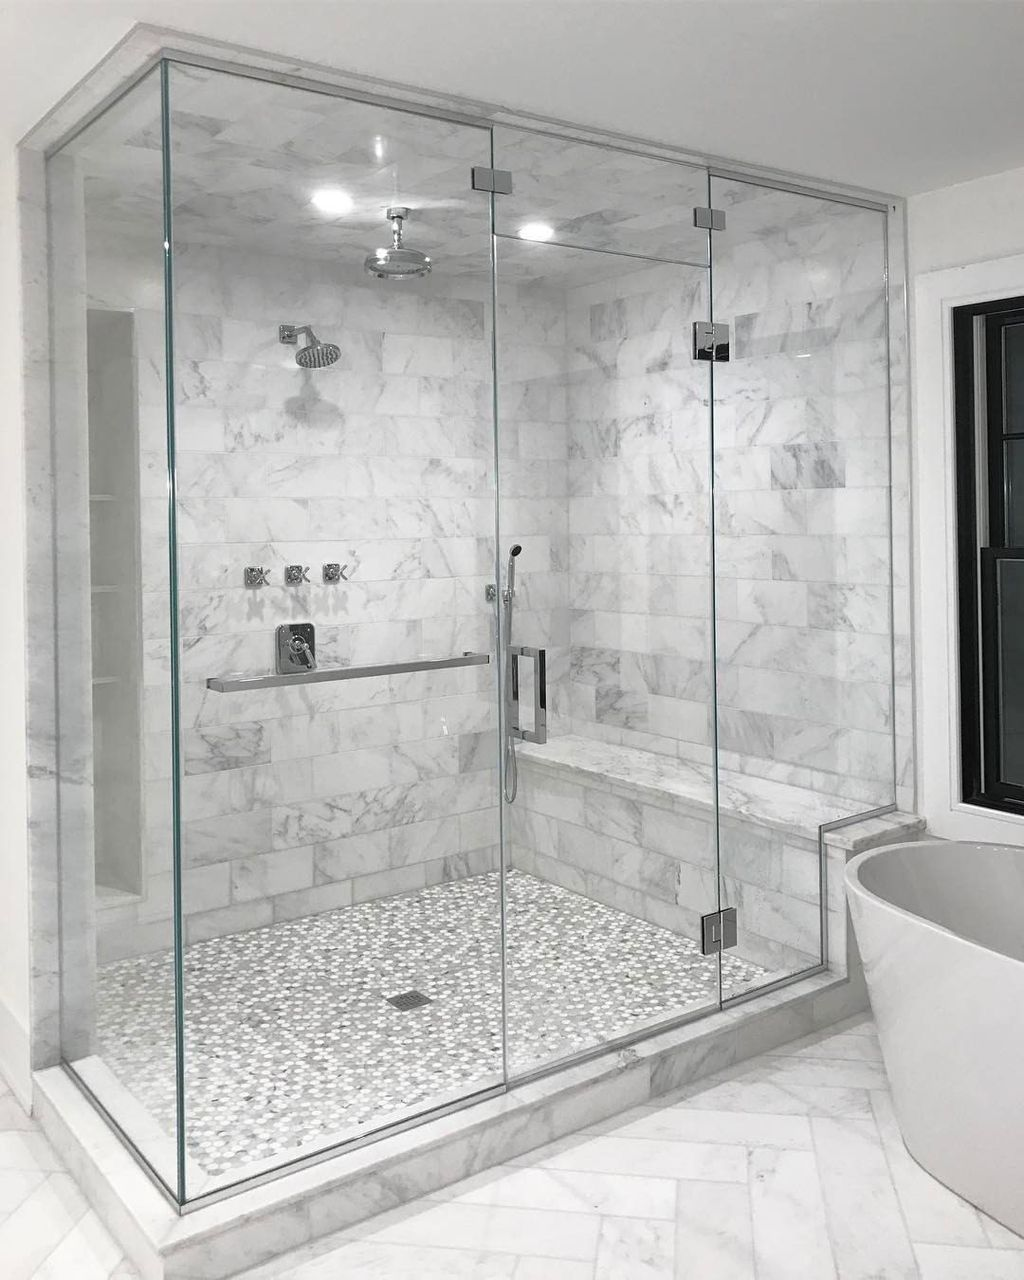 42 Perfect Shower Design Ideas To Remodel Your Bathroom Bathroom Remodel Shower Bathroom Interior Design Master Bathroom Shower